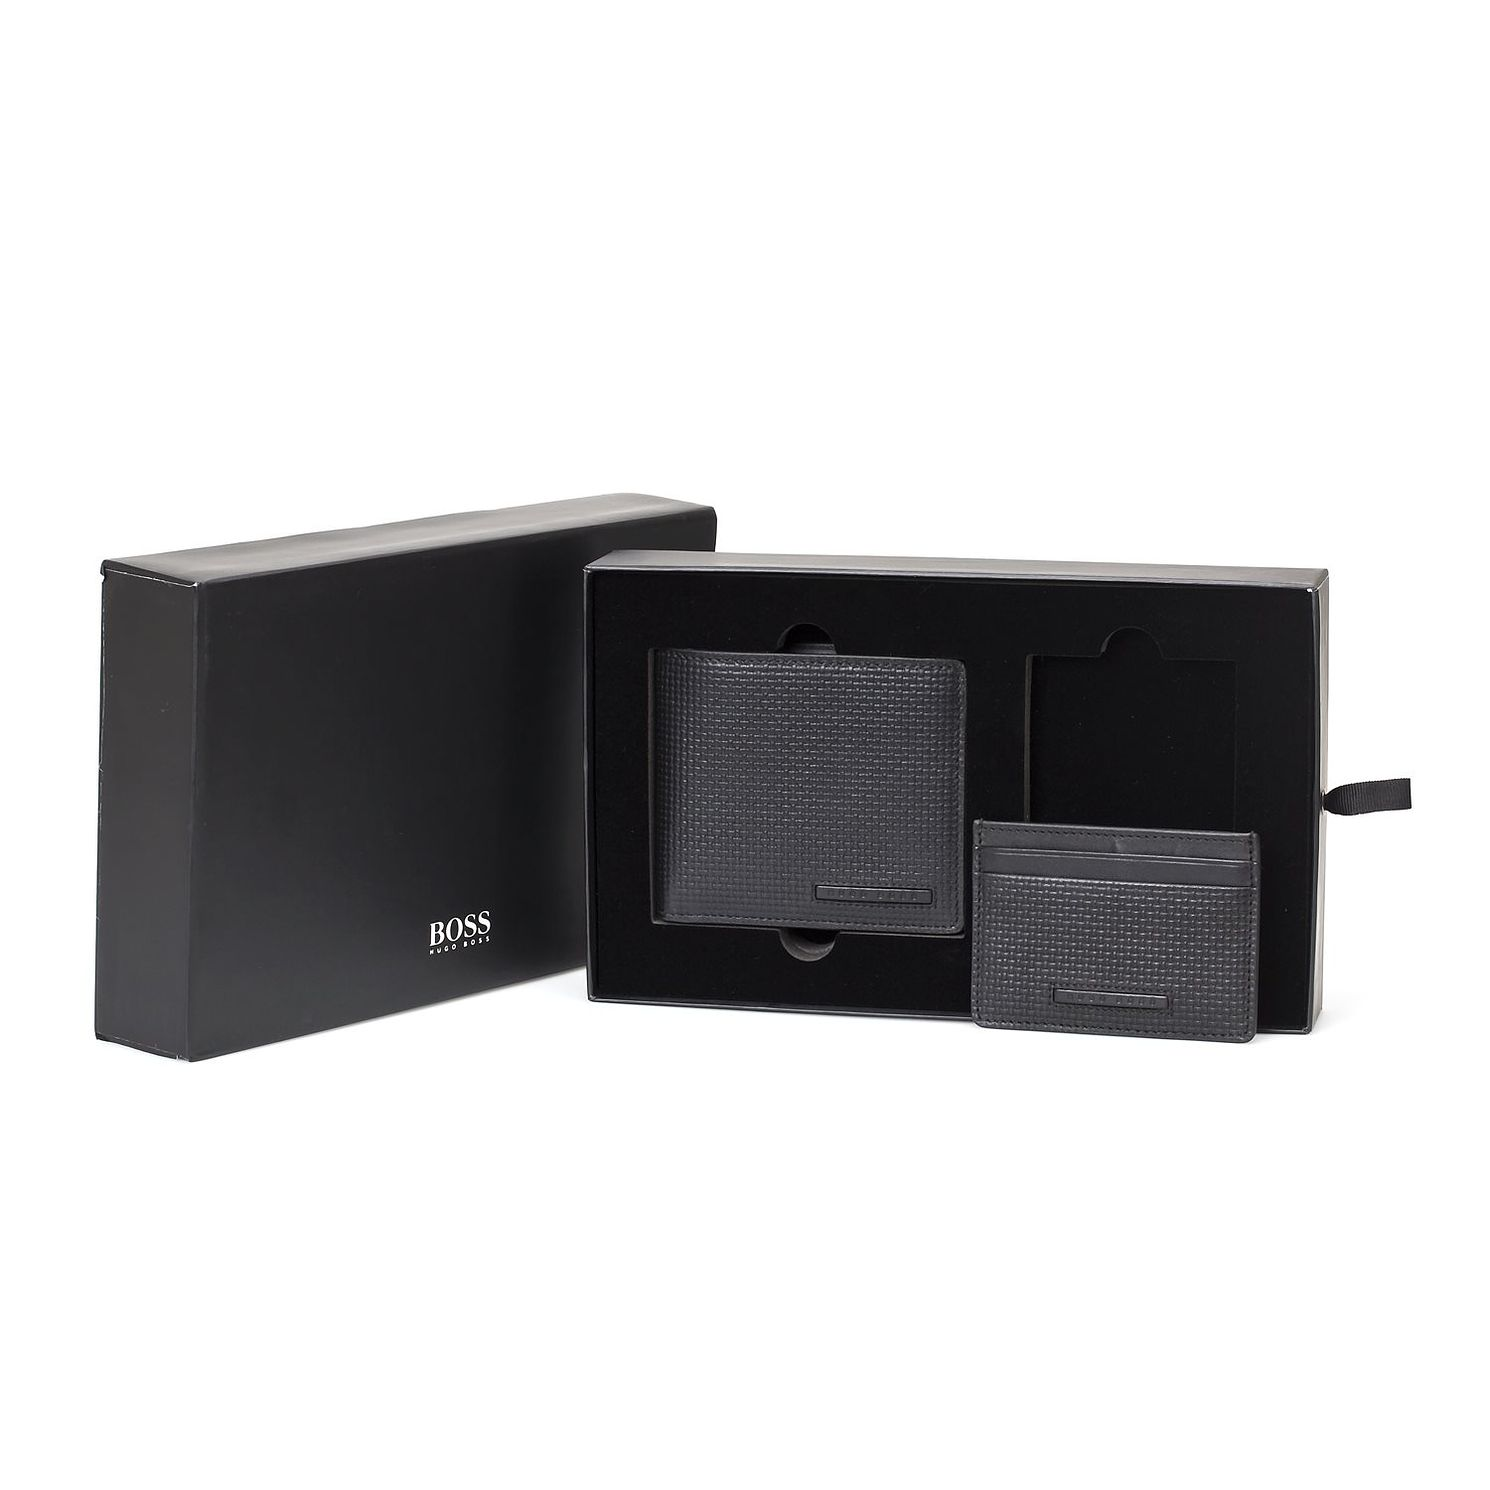 BOSS Men's 8Cc Wallet And Cardholder Gift Set - Product number 3789888